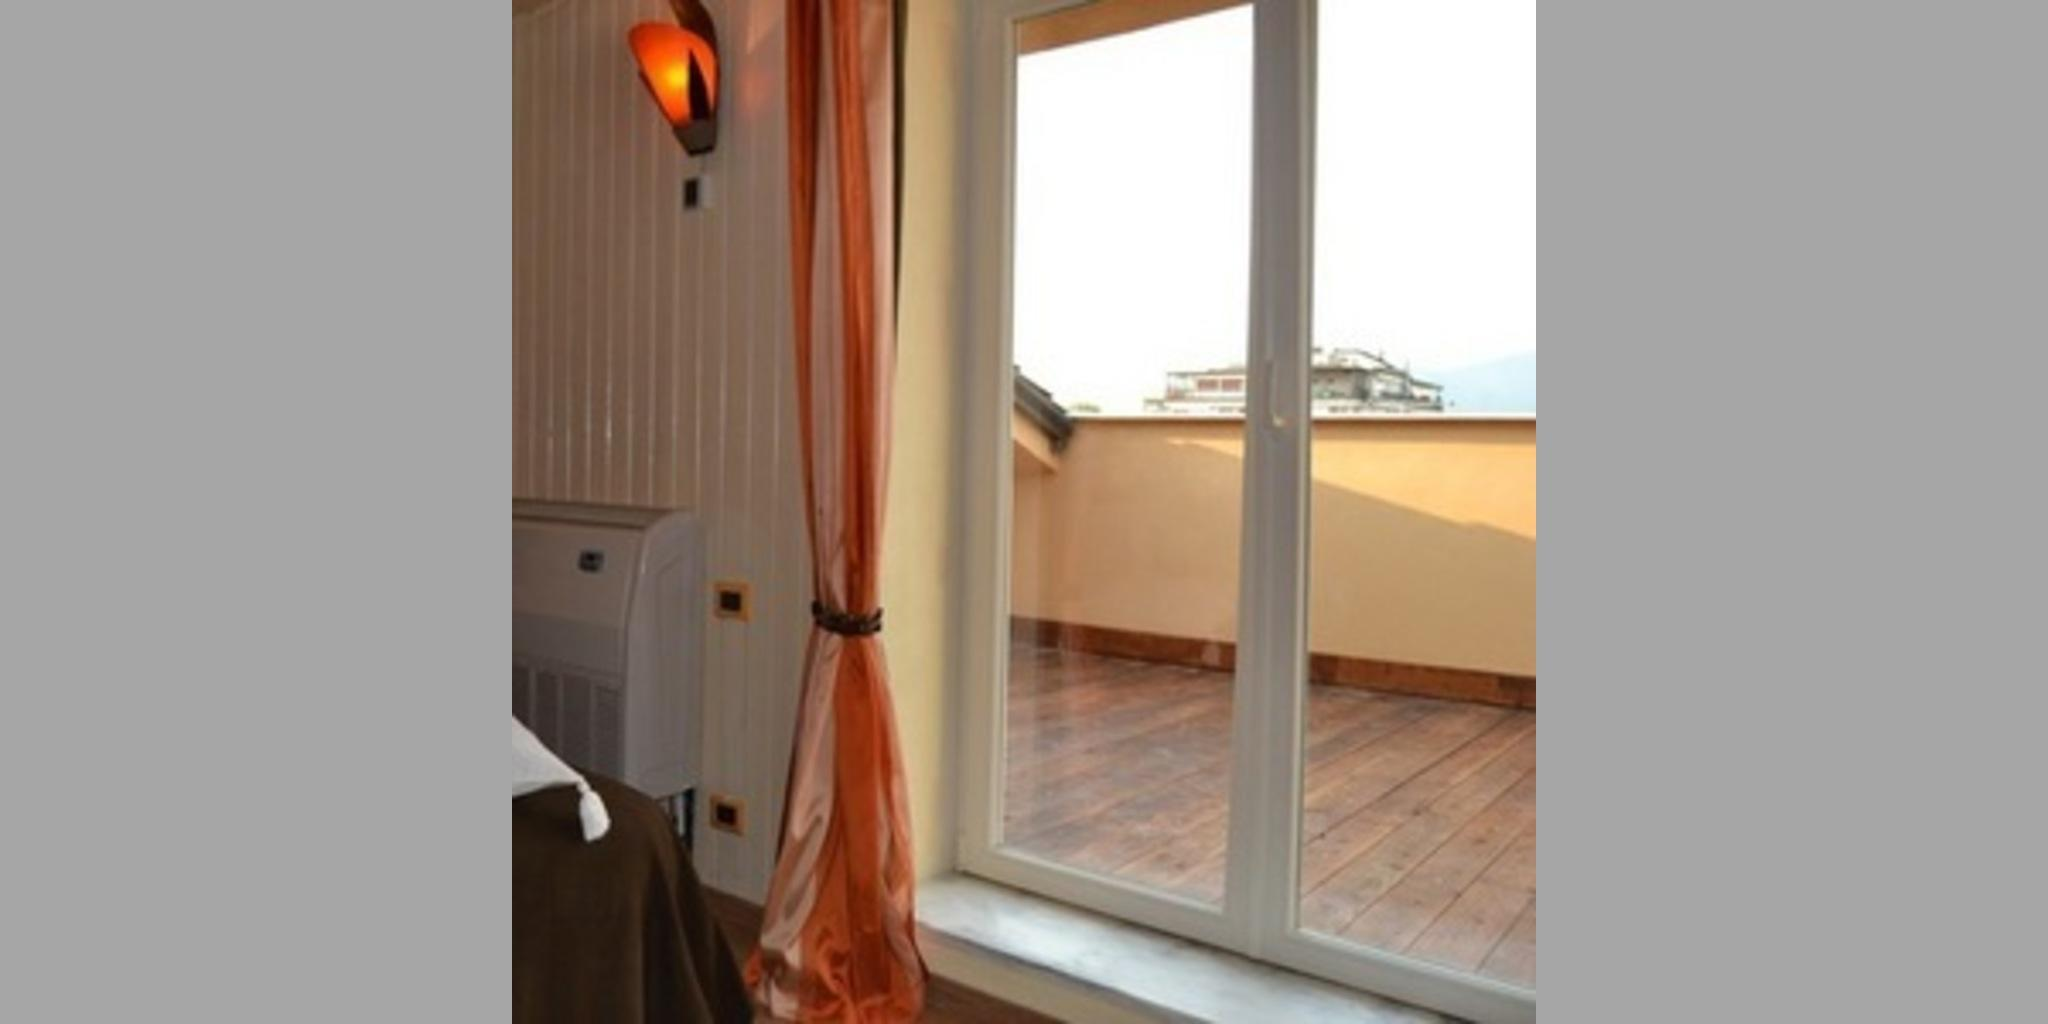 Bed & Breakfast Carrara - Marina Di Carrara